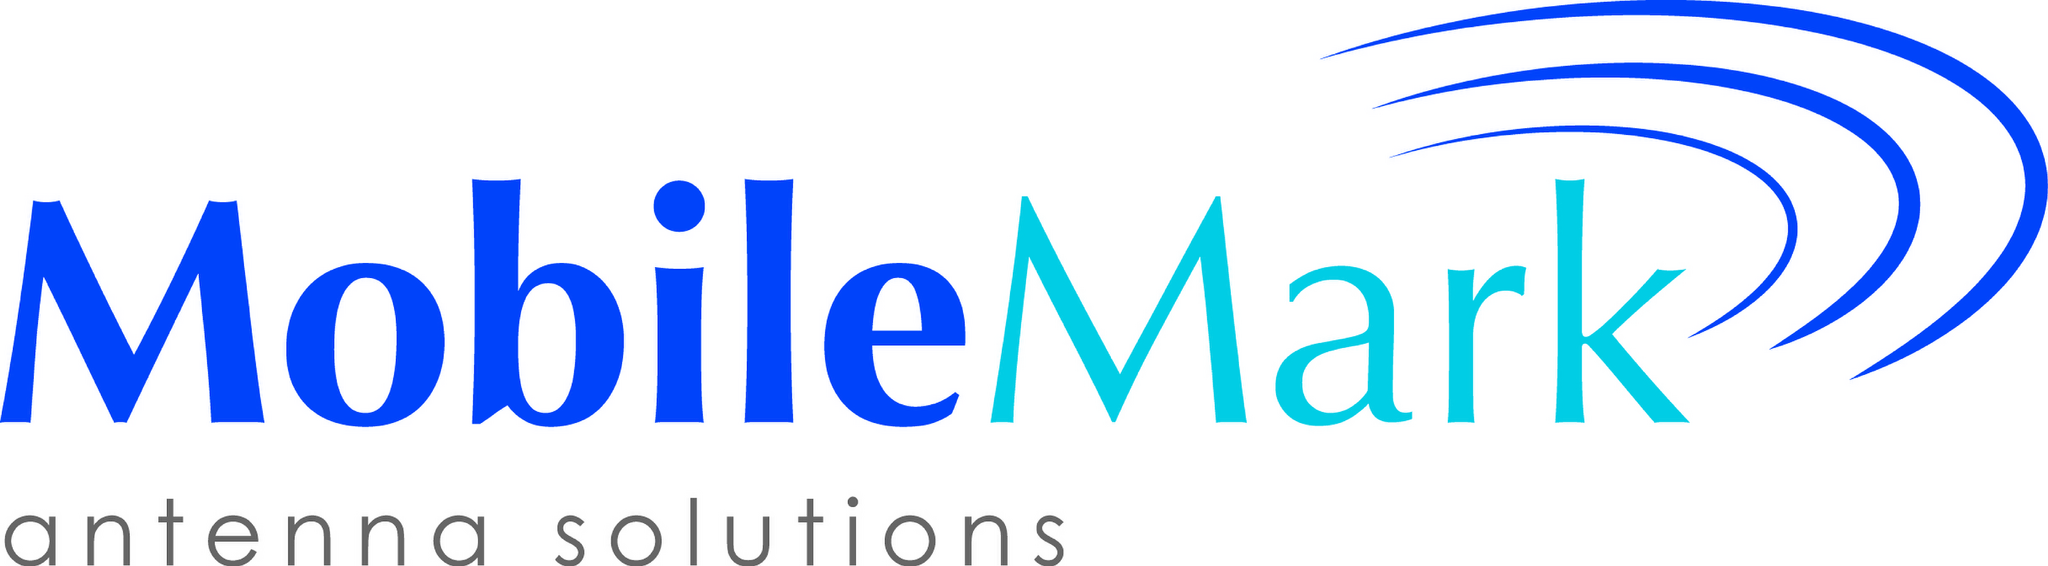 Mobile Mark Antenna Solutions